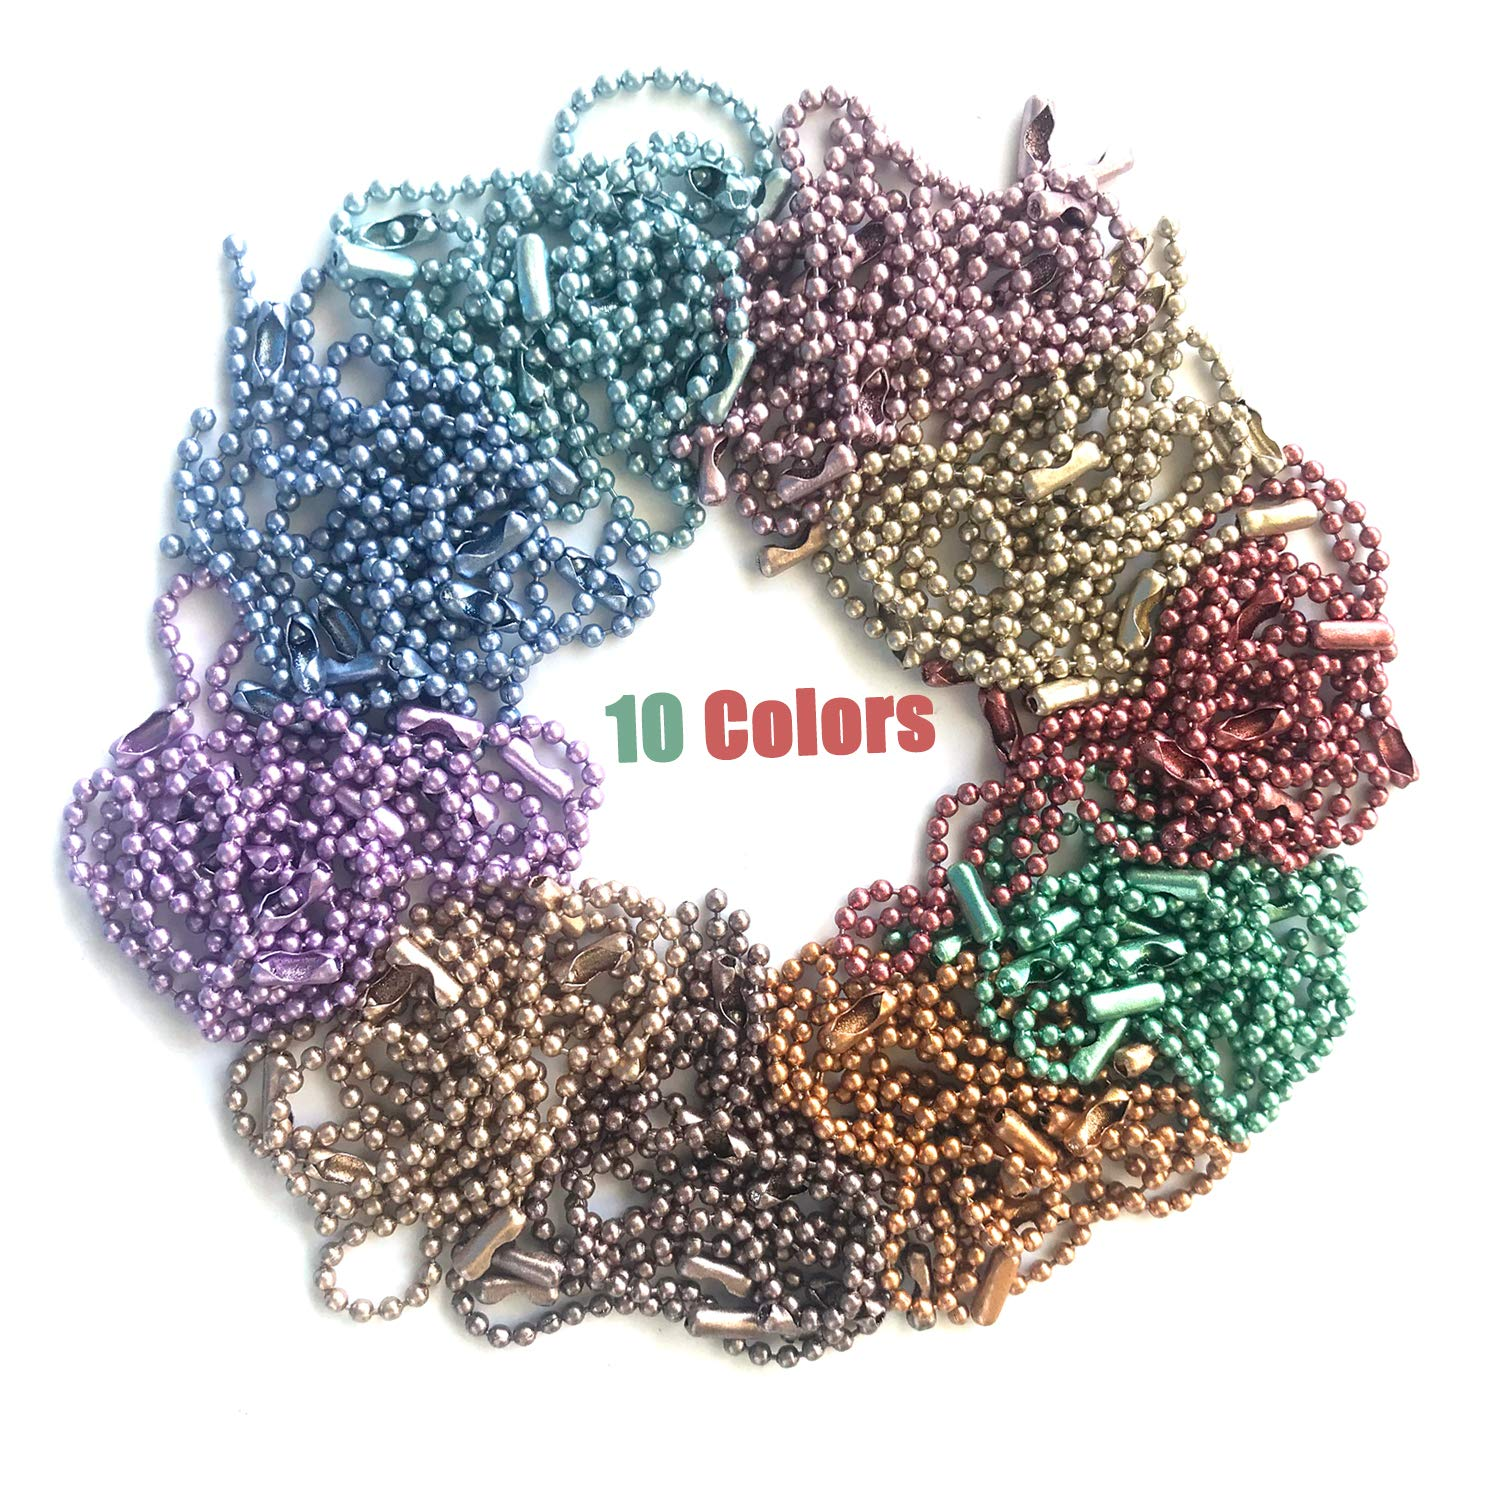 Rojwei 100pcs Mix Colors Metal Ball Chain Keychains,Christmas DIY Tag ID Chain 10cm Long, 2.4 mm Diameter Bead Size Complete with a Bead Chain Connector.